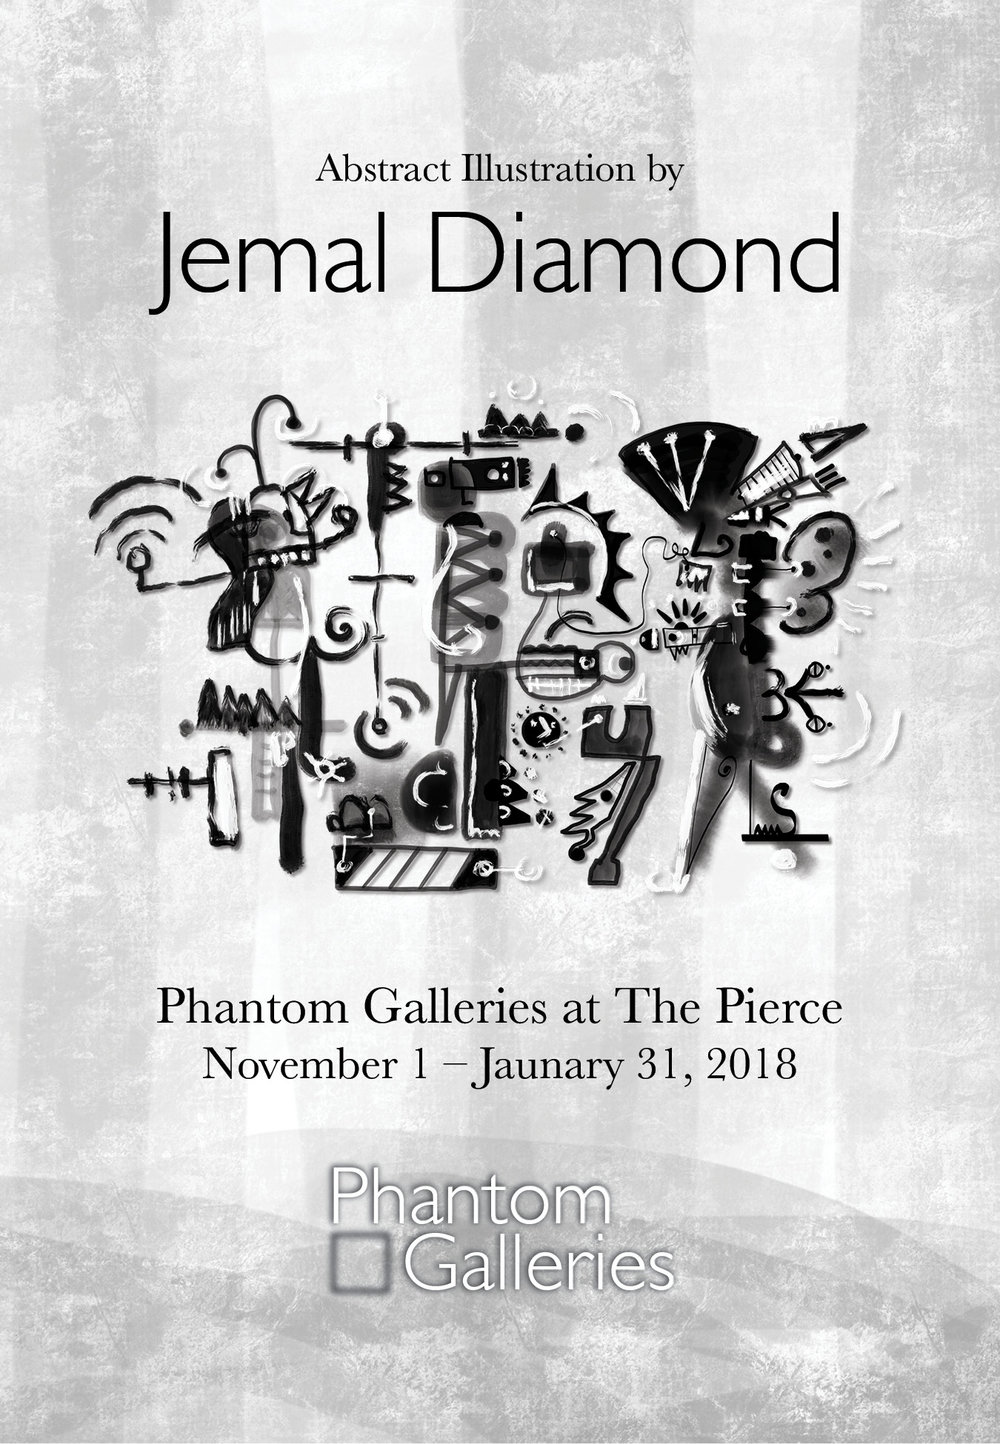 - Phantom Galleries is pleased to present a special collection of limited-edition prints by abstract artist Jemal Diamond. The collection, created solely on the Apple iPad, explores at the cross-section of digital design and traditional mark making to create new, contradictory, layered, abstracted figures and landscapes. A graduate of the School of the Art Institute of Chicago, Jemal takes a playful, improvisational approach that aims to keep the viewer's joyful engagement while introducing a wide-range of darker graphic indicators and visual cues.For this exclusive collection, each limited-edition fine art print, hand-signed by Jemal, is beautifully mounted in a black satin wood frame, printed on Pura Fine Art velvet paper, 4-ply conservation rag mat, and acrylic non-glare glazing.Curator Vivian Giourousis' teaser video: click here.